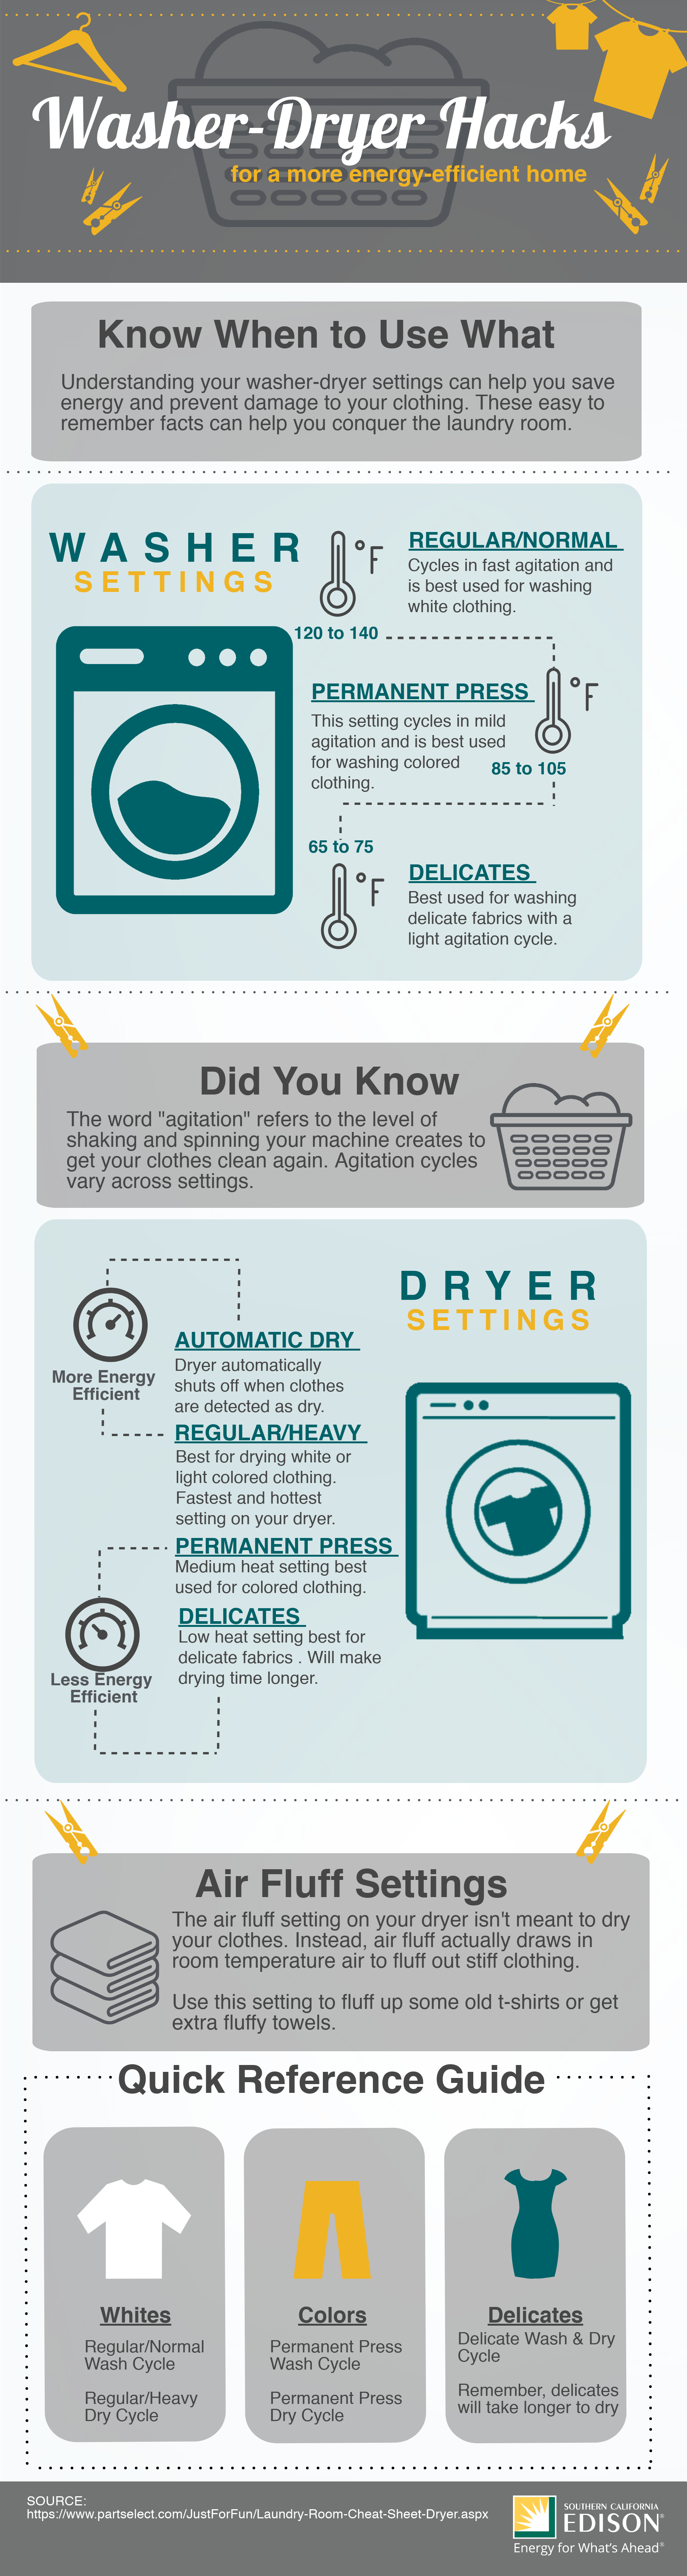 washer dryer infographic